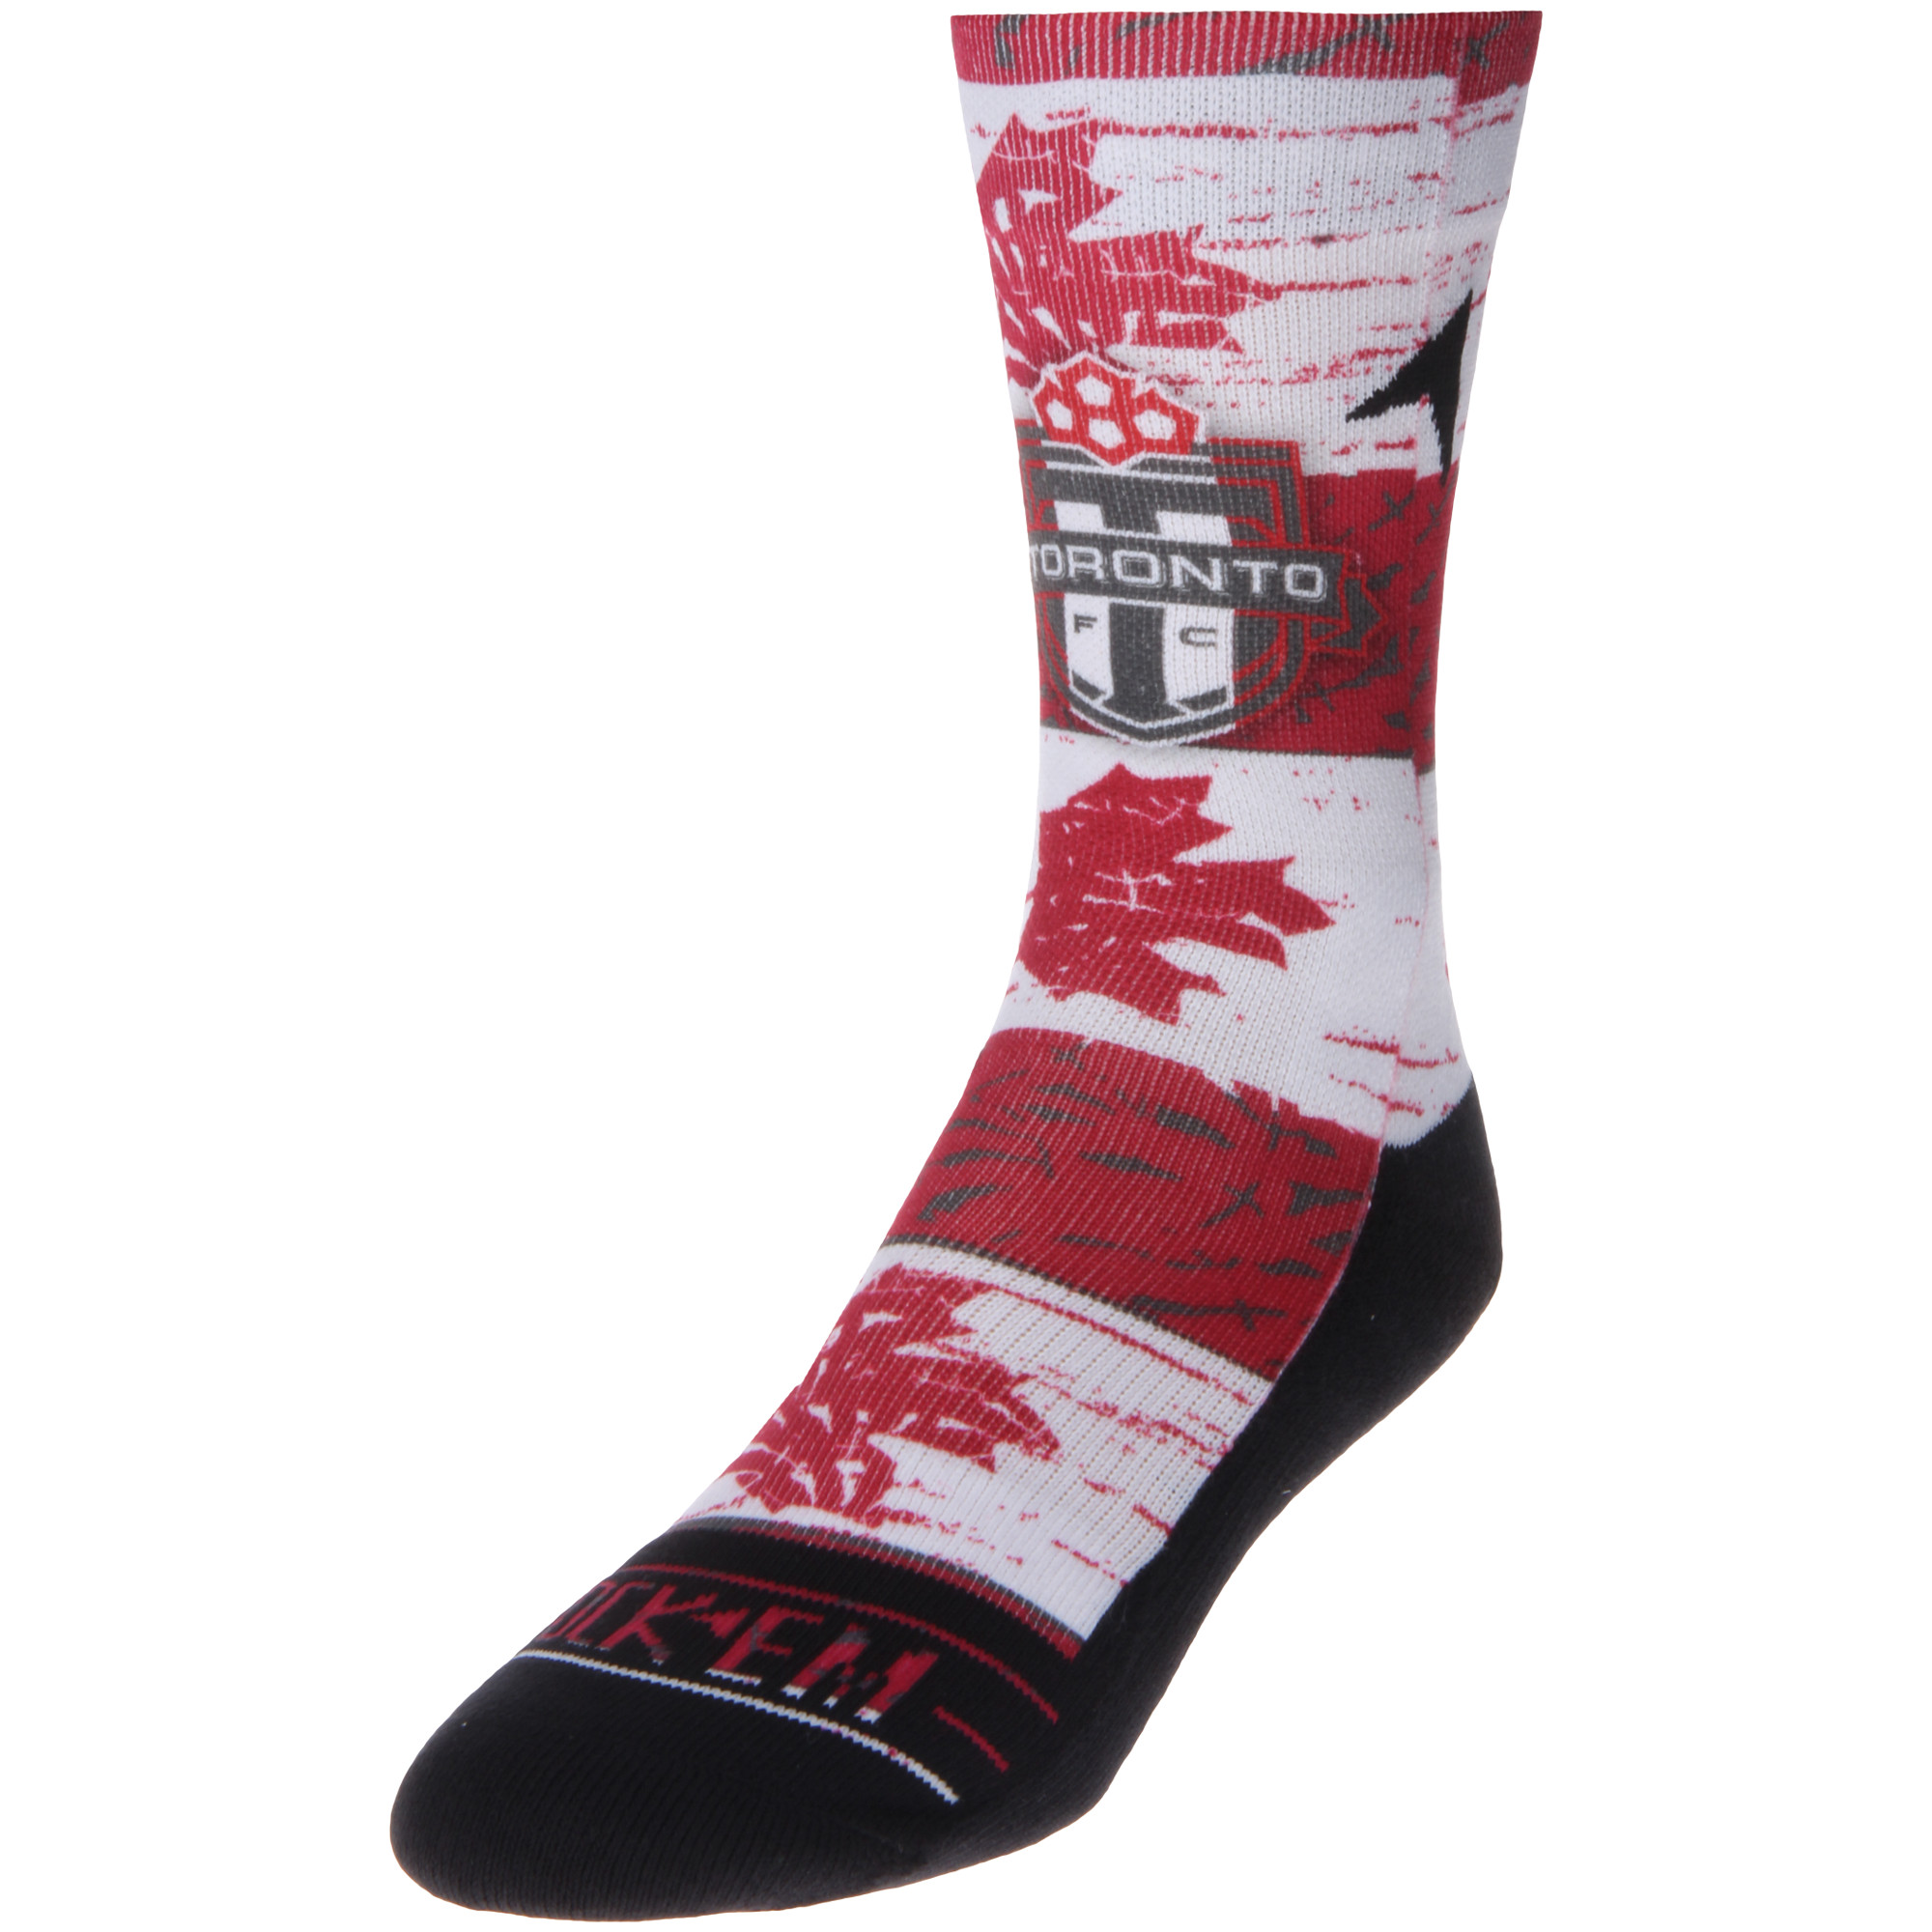 Toronto FC For Club and Country Socks - Red